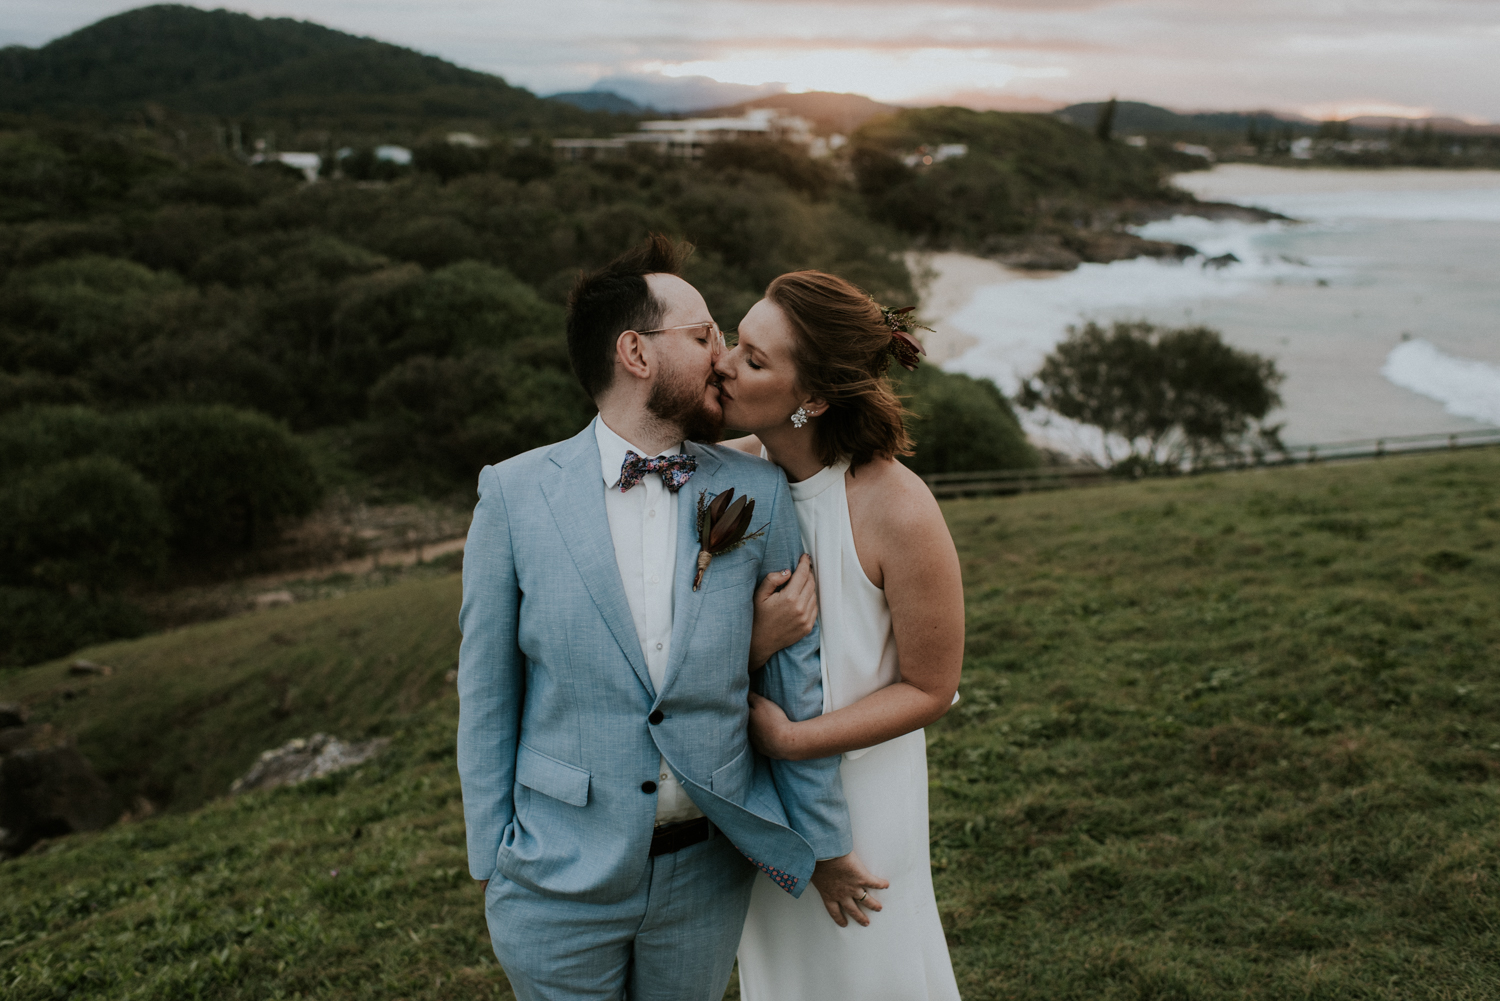 Brisbane Wedding Photographer | Tweed Coast Elopement Photography-72.jpg